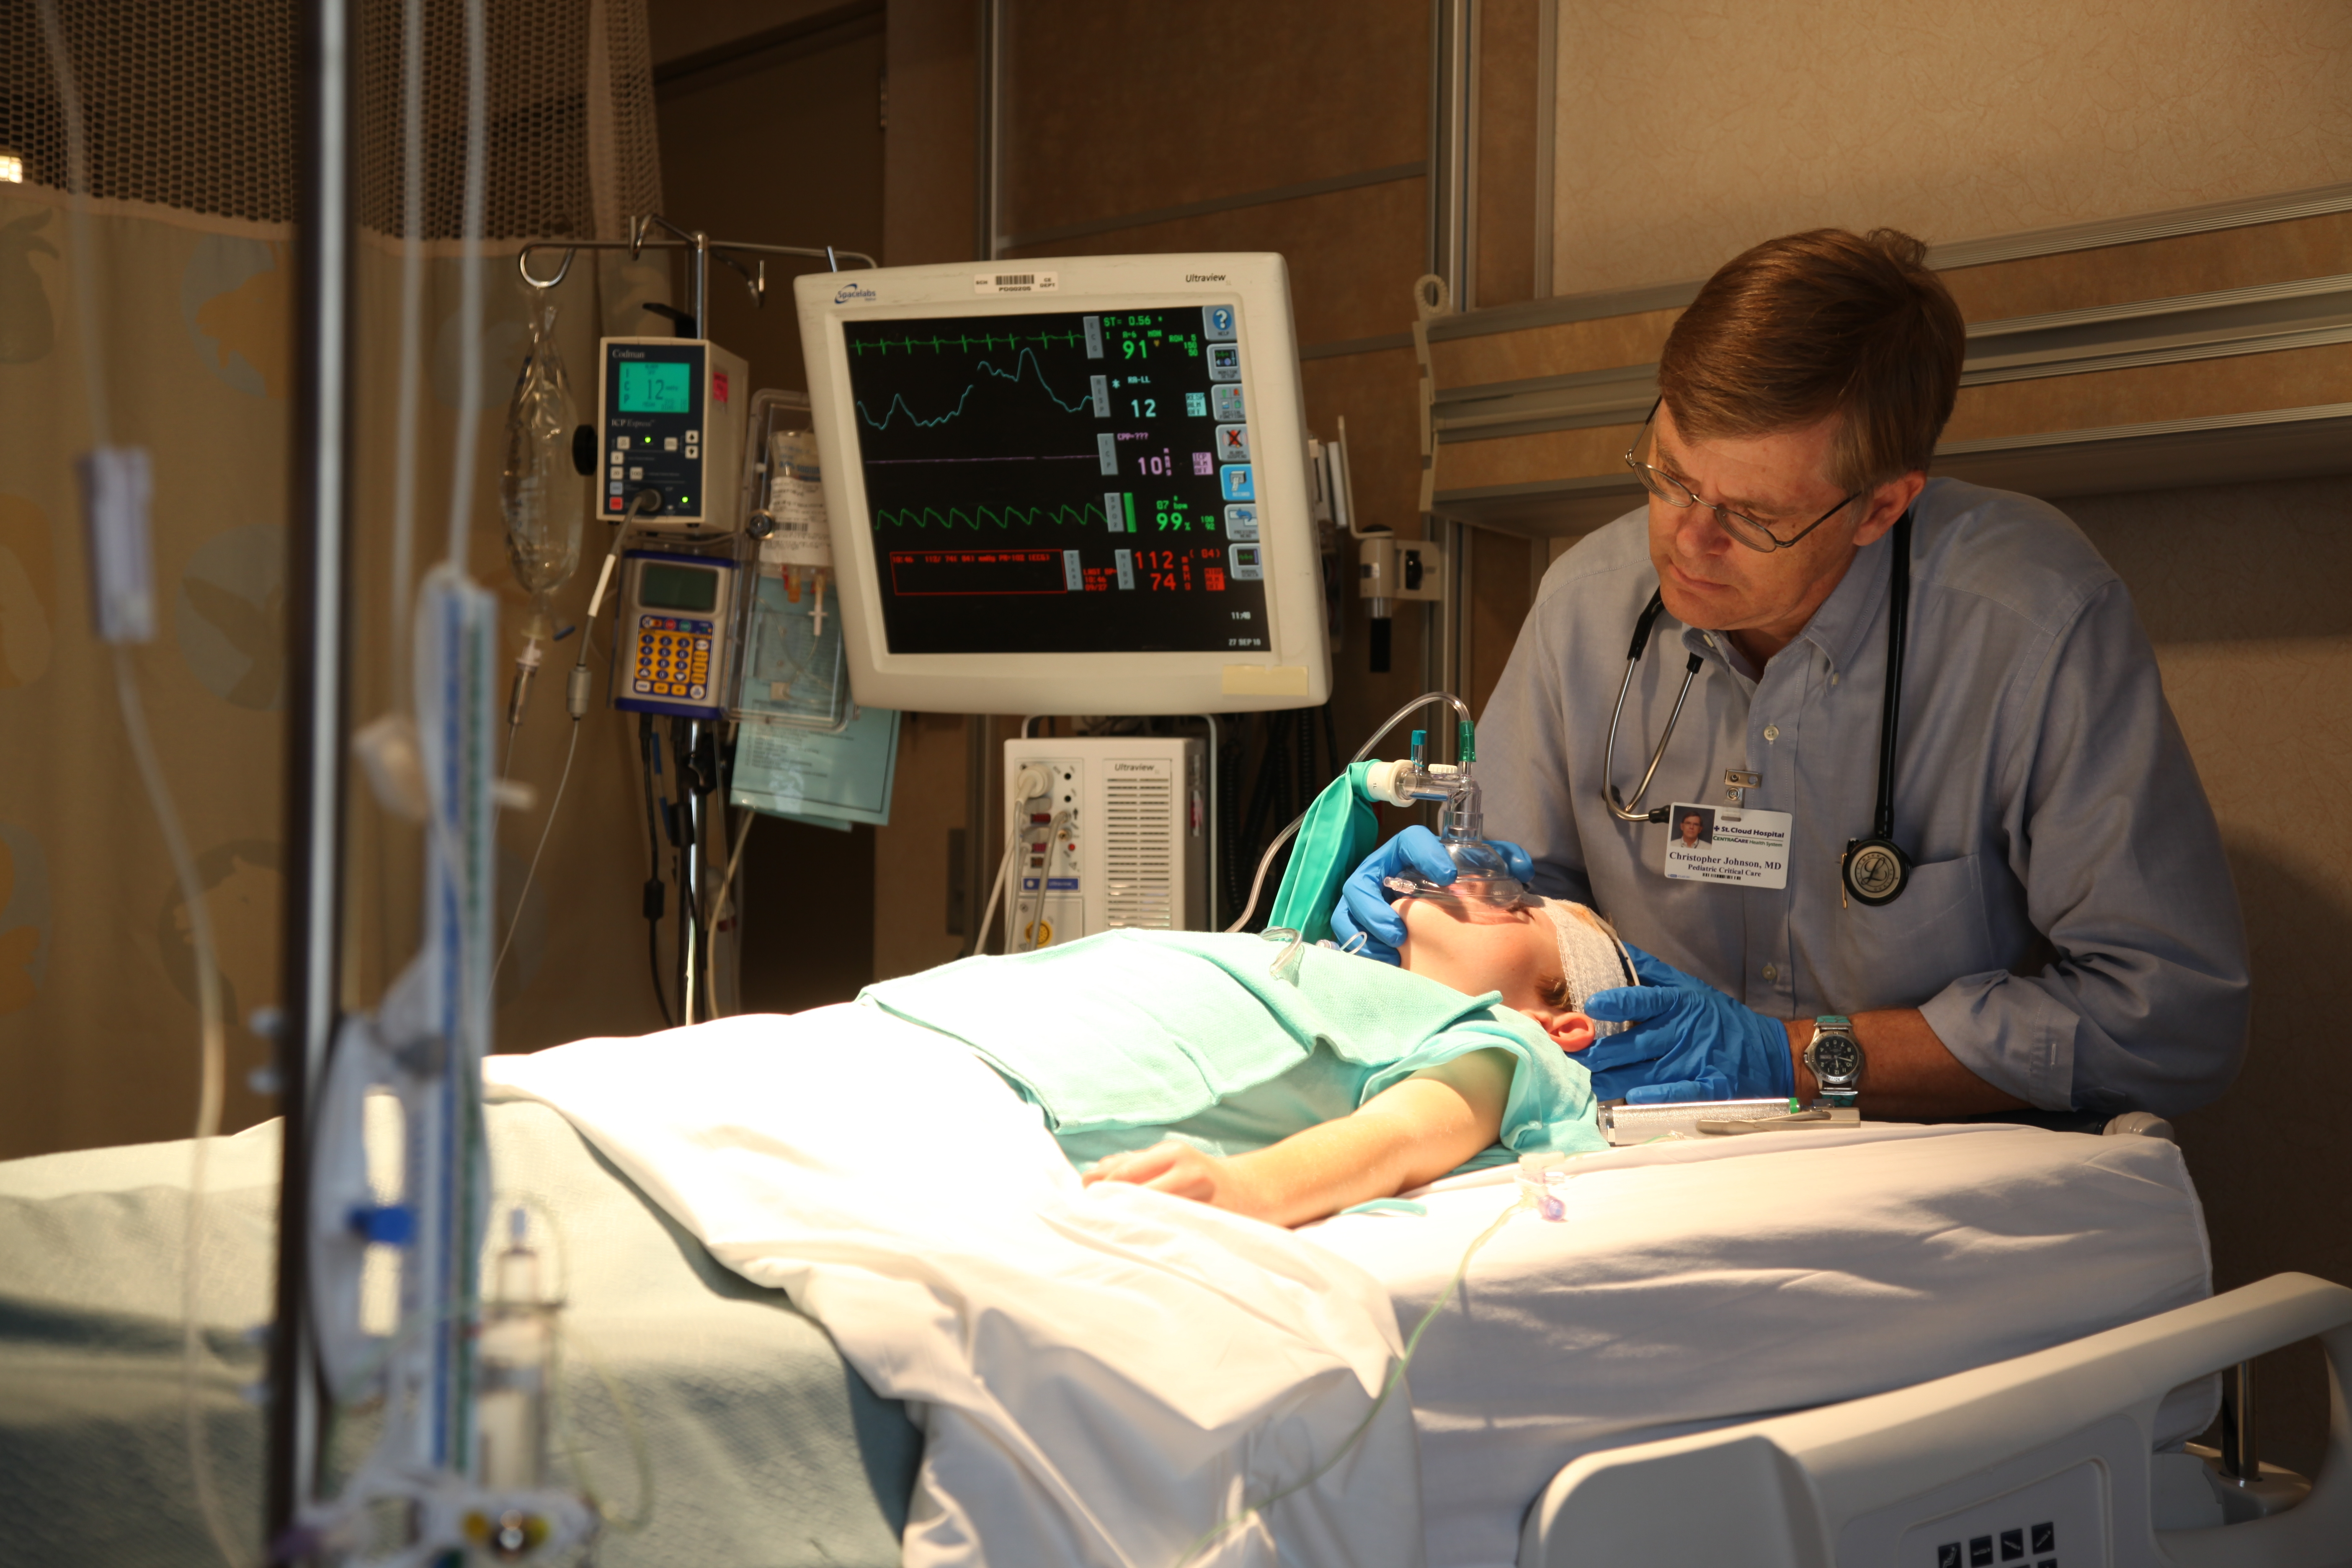 The rights of adolescents to make life and death decisionsVentilator Patient Child